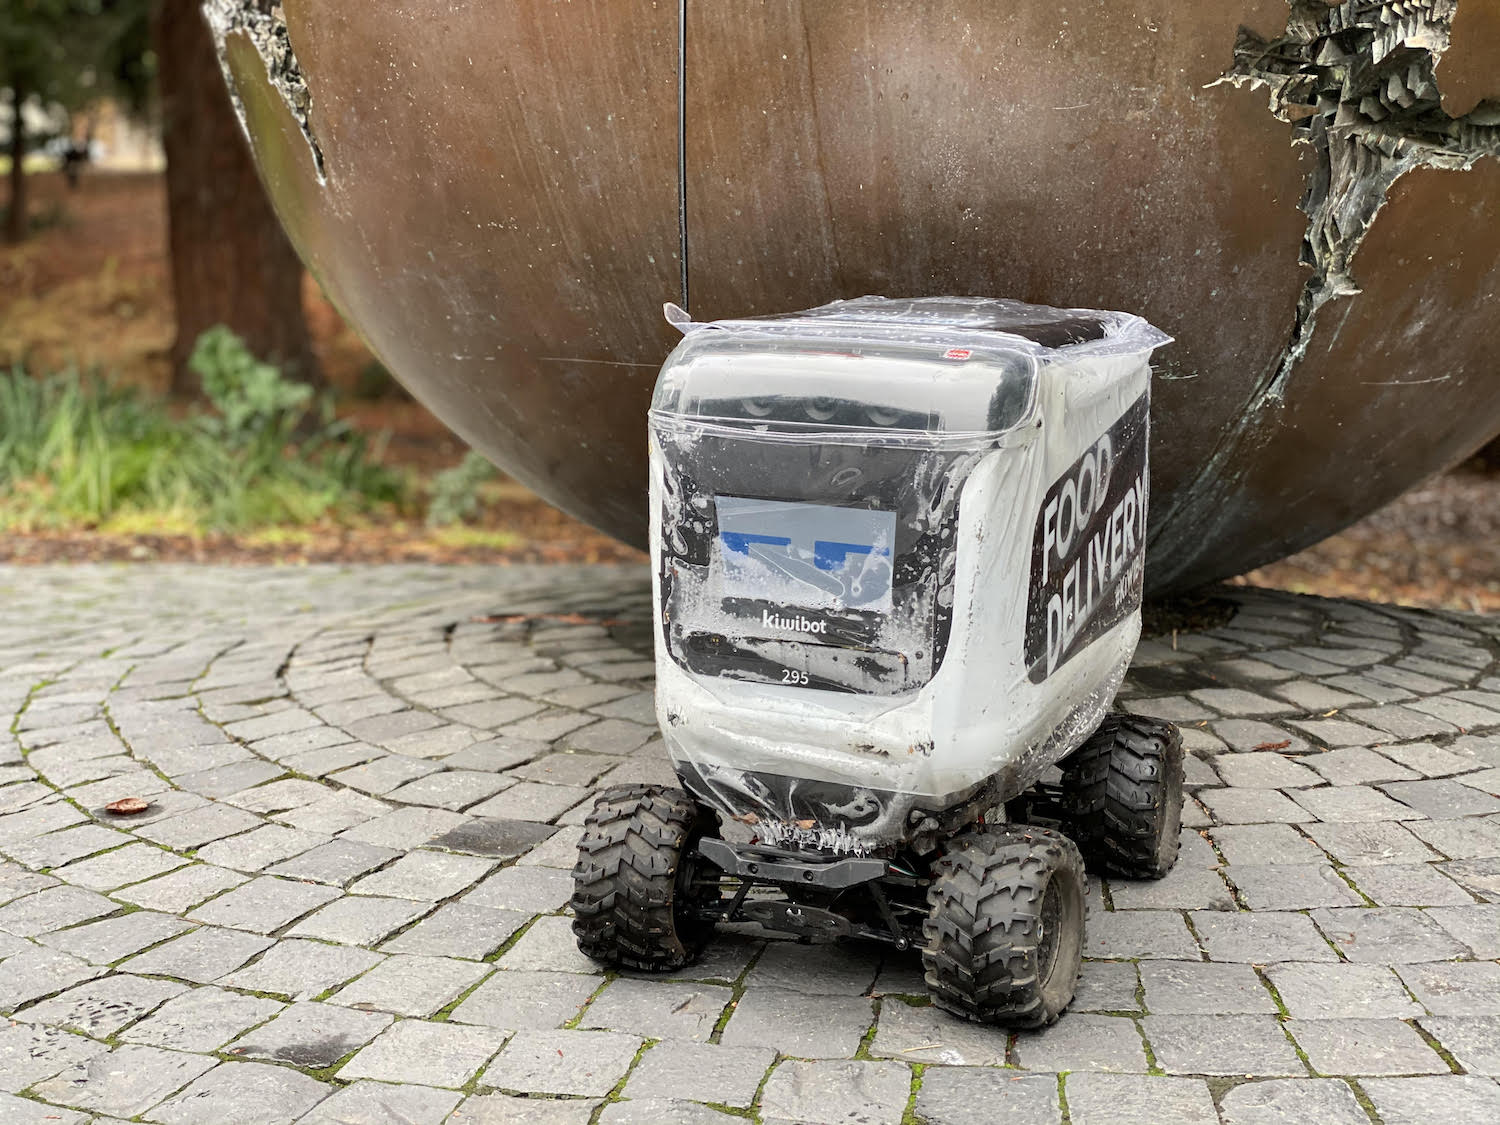 Kiwibot will discontinue delivery service starting Dec. 15.